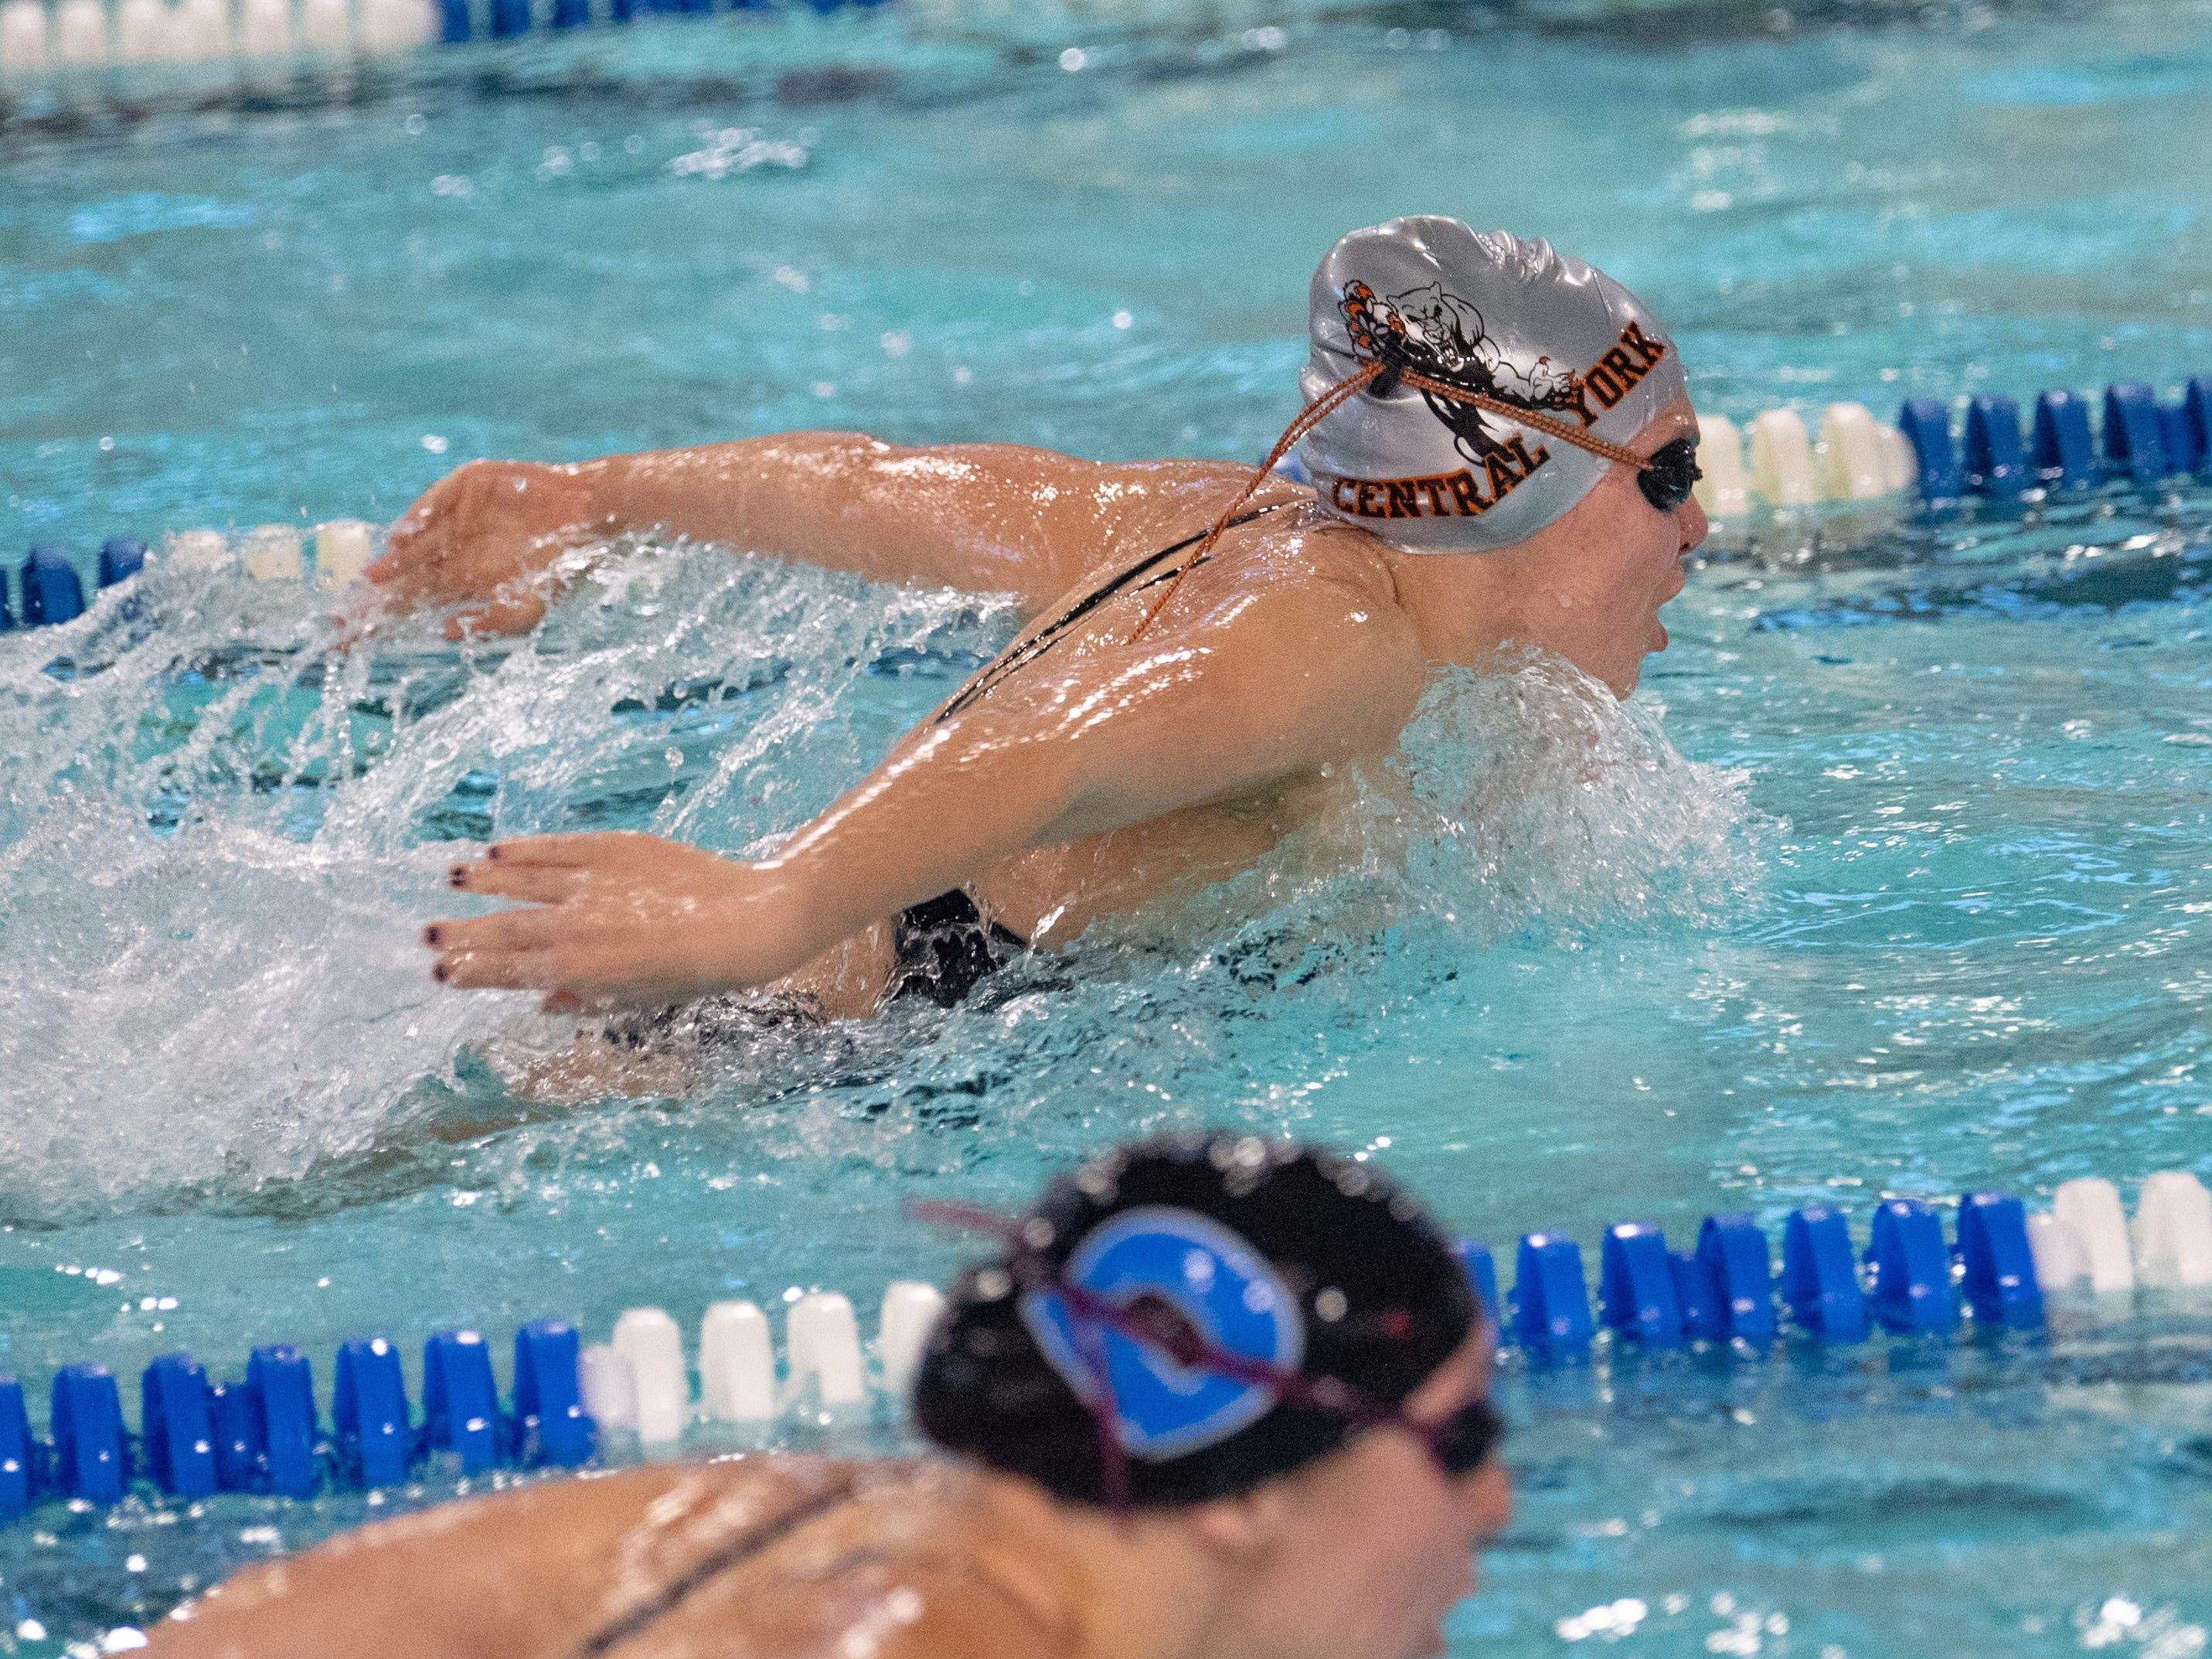 Micah Spoko leads the way in the 200 Yard IM during the boys' and girls' swim meet between Dallastown and Central York at Dallastown Area High School, January 10, 2019. The Panthers defeated the Wildcats 93 to 77 and the Lady Panthers defeated the Lady Wildcats 96 to 74.